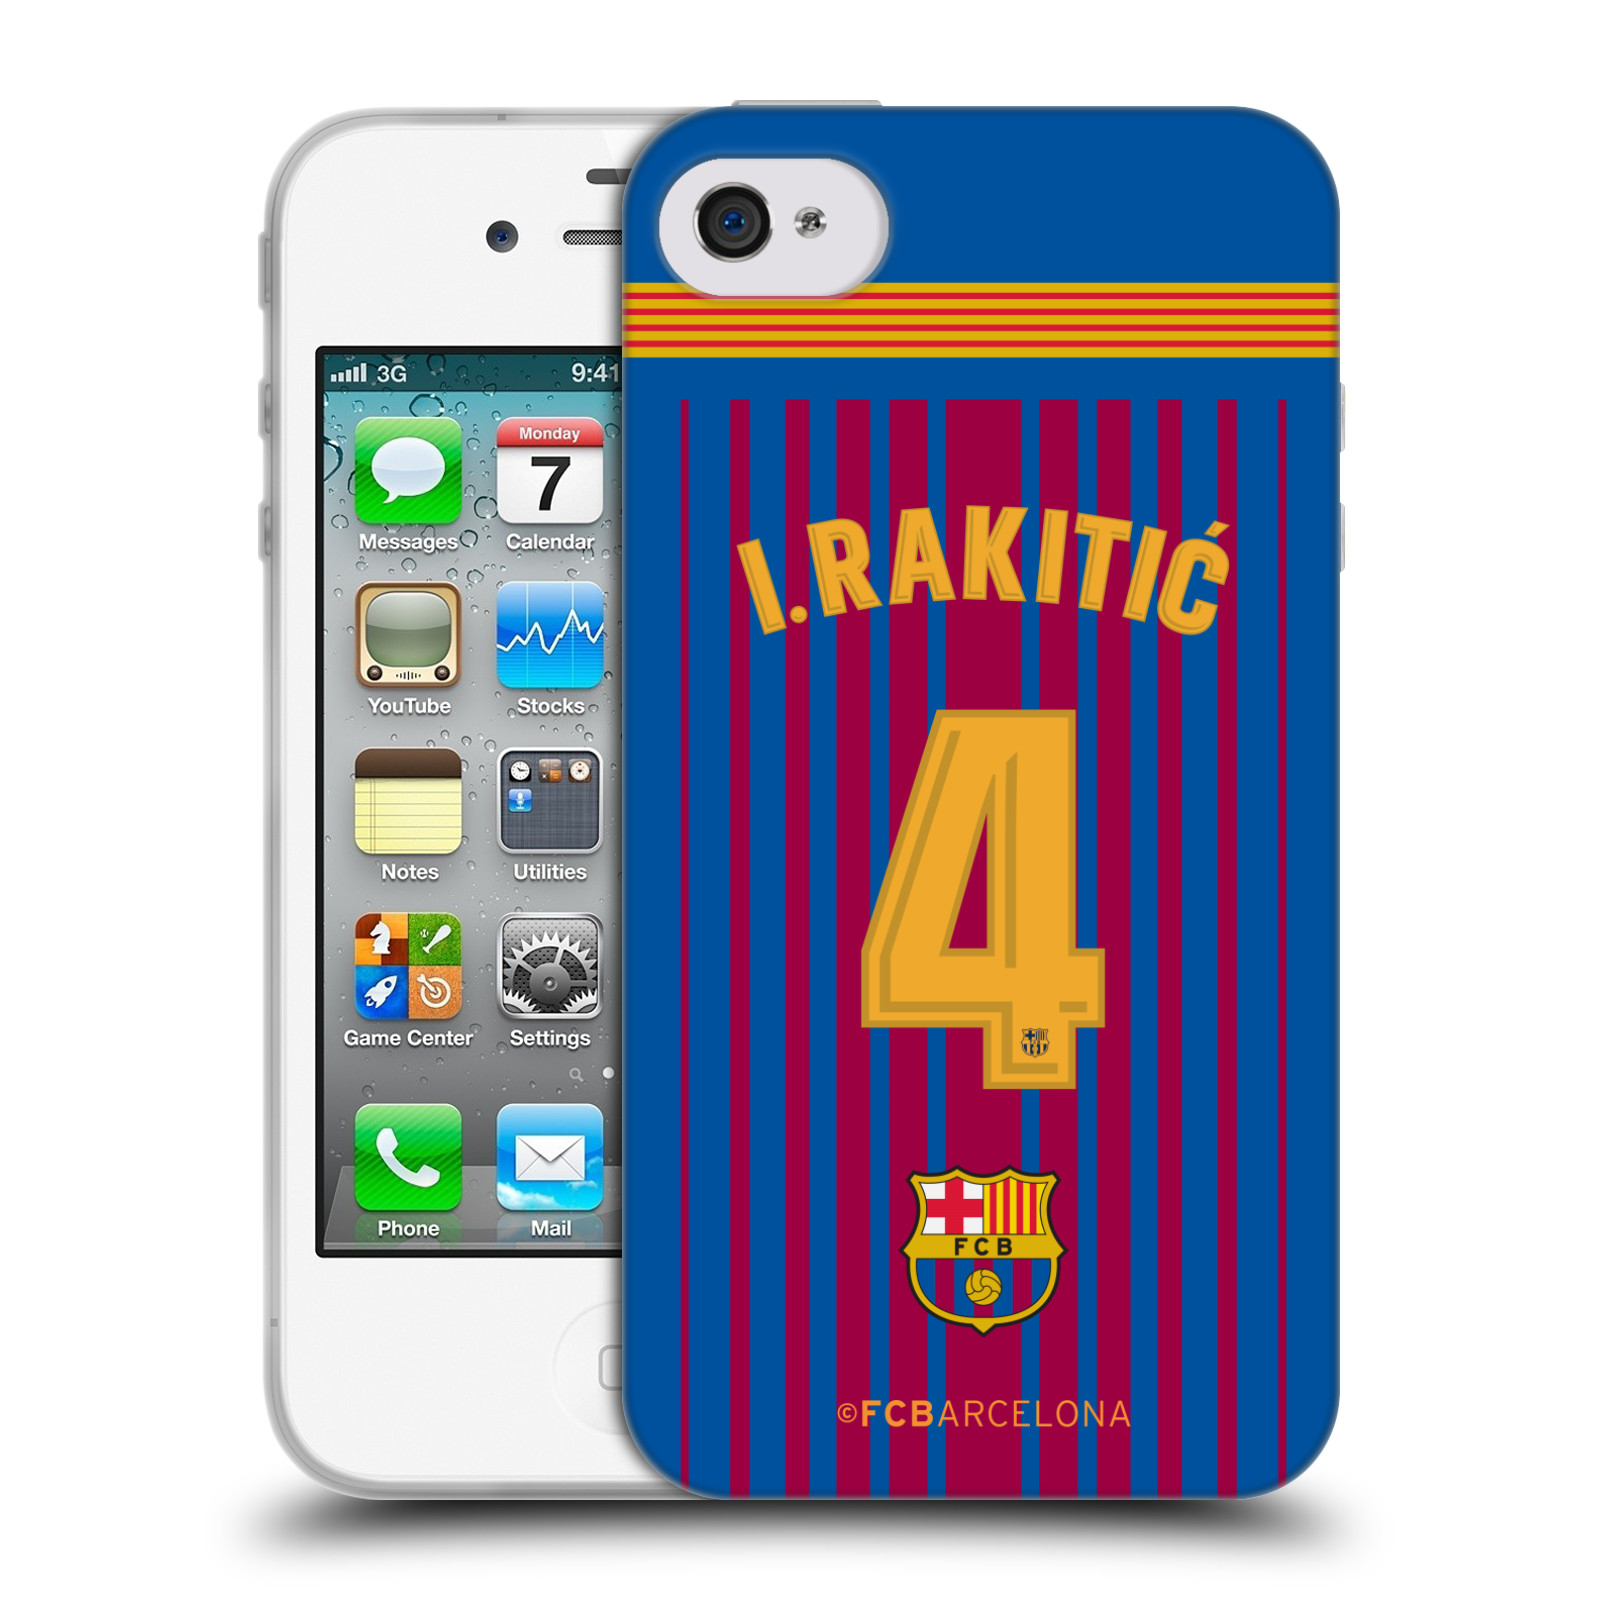 HEAD CASE silikonový obal na mobil Apple Iphone 4 Fotbalový klub FC BARCELONA domací dres I. Rakitic